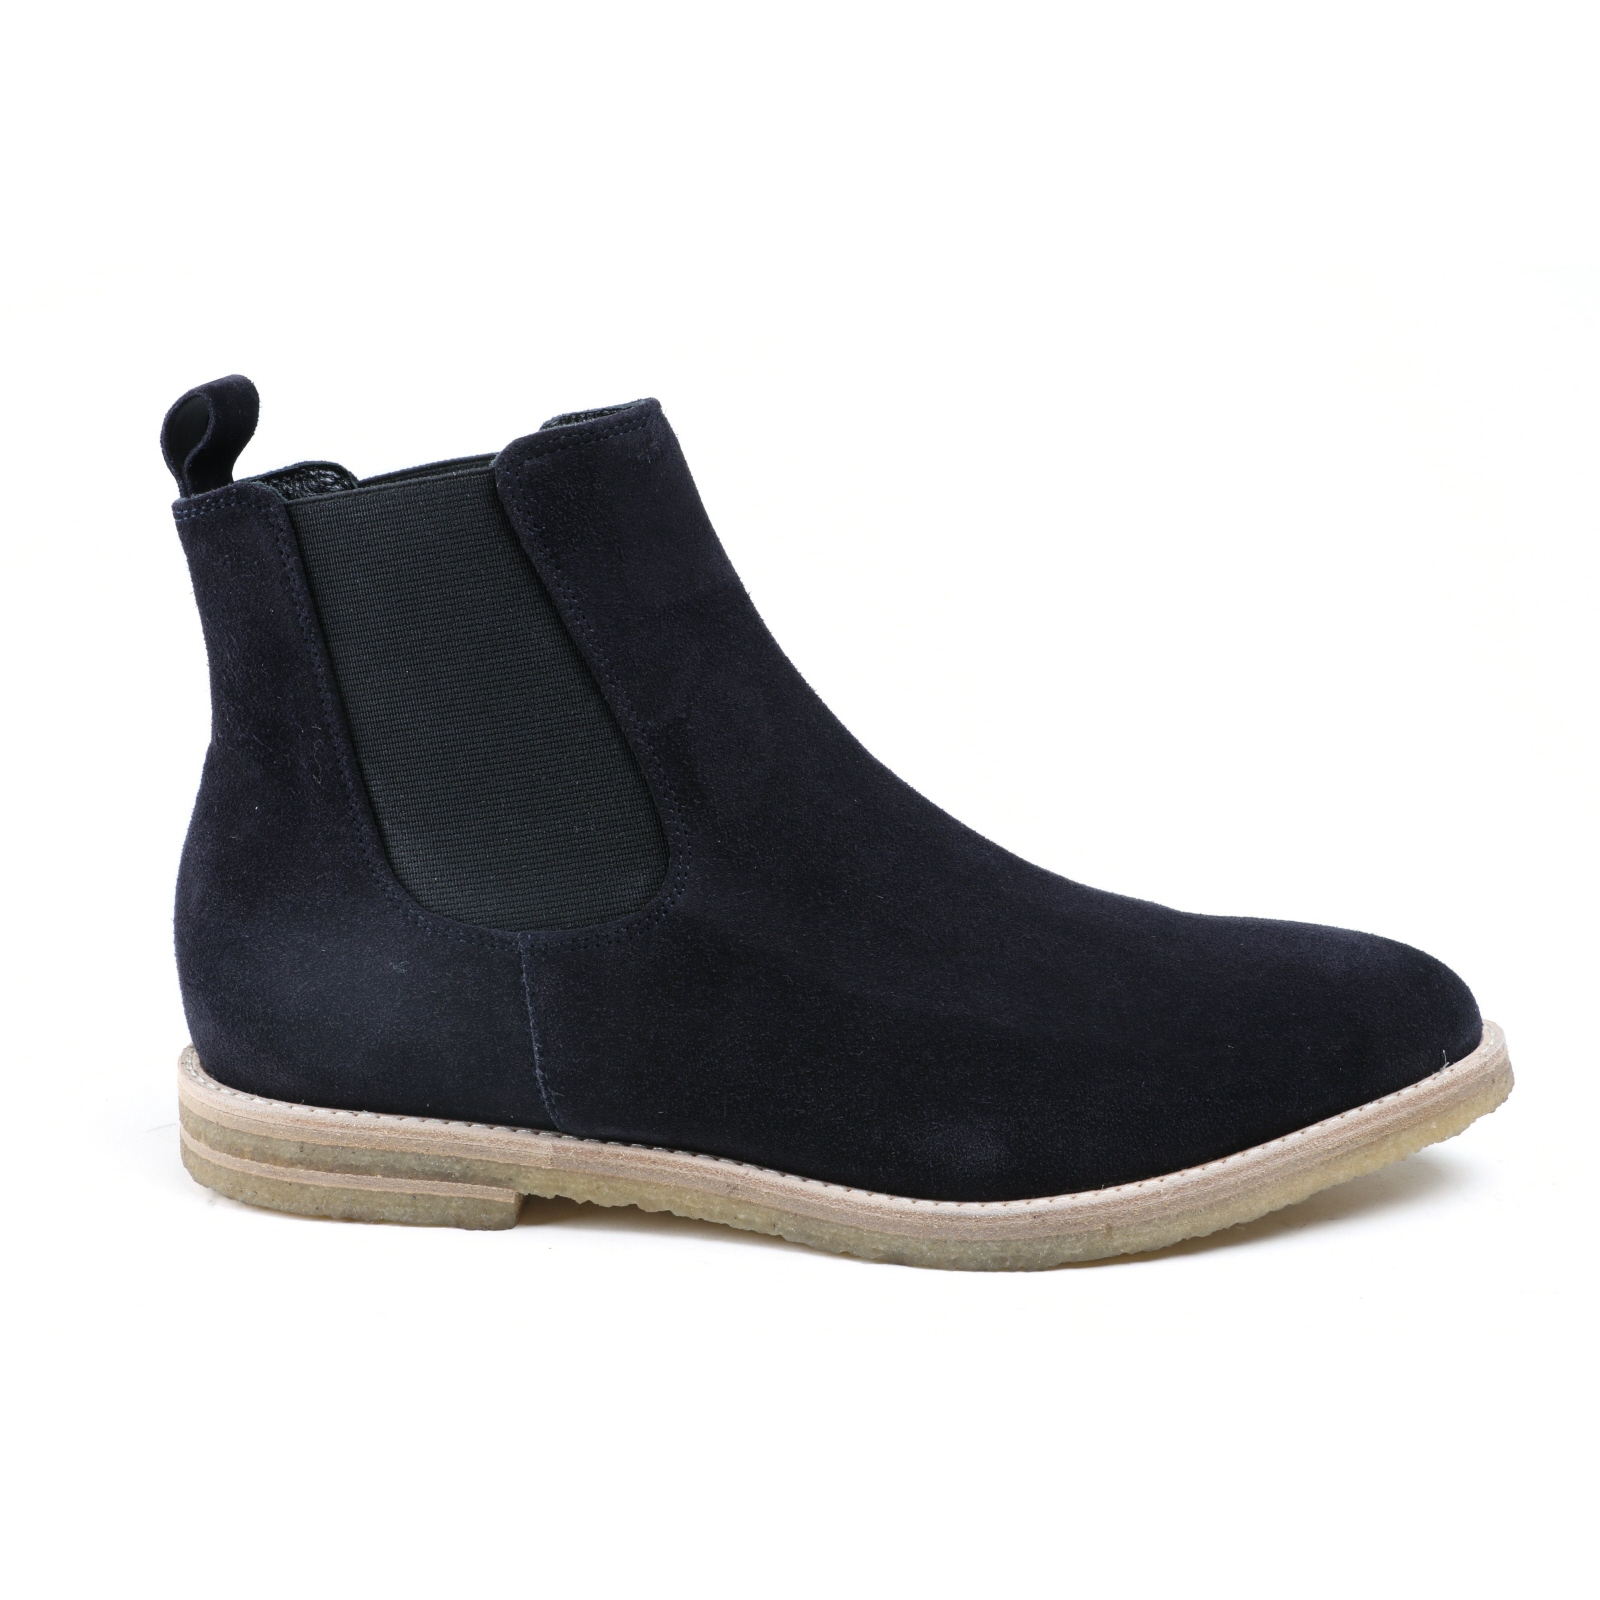 Womens Ankle Boot k&s Chelsea Boots bluee Davison New Size 37